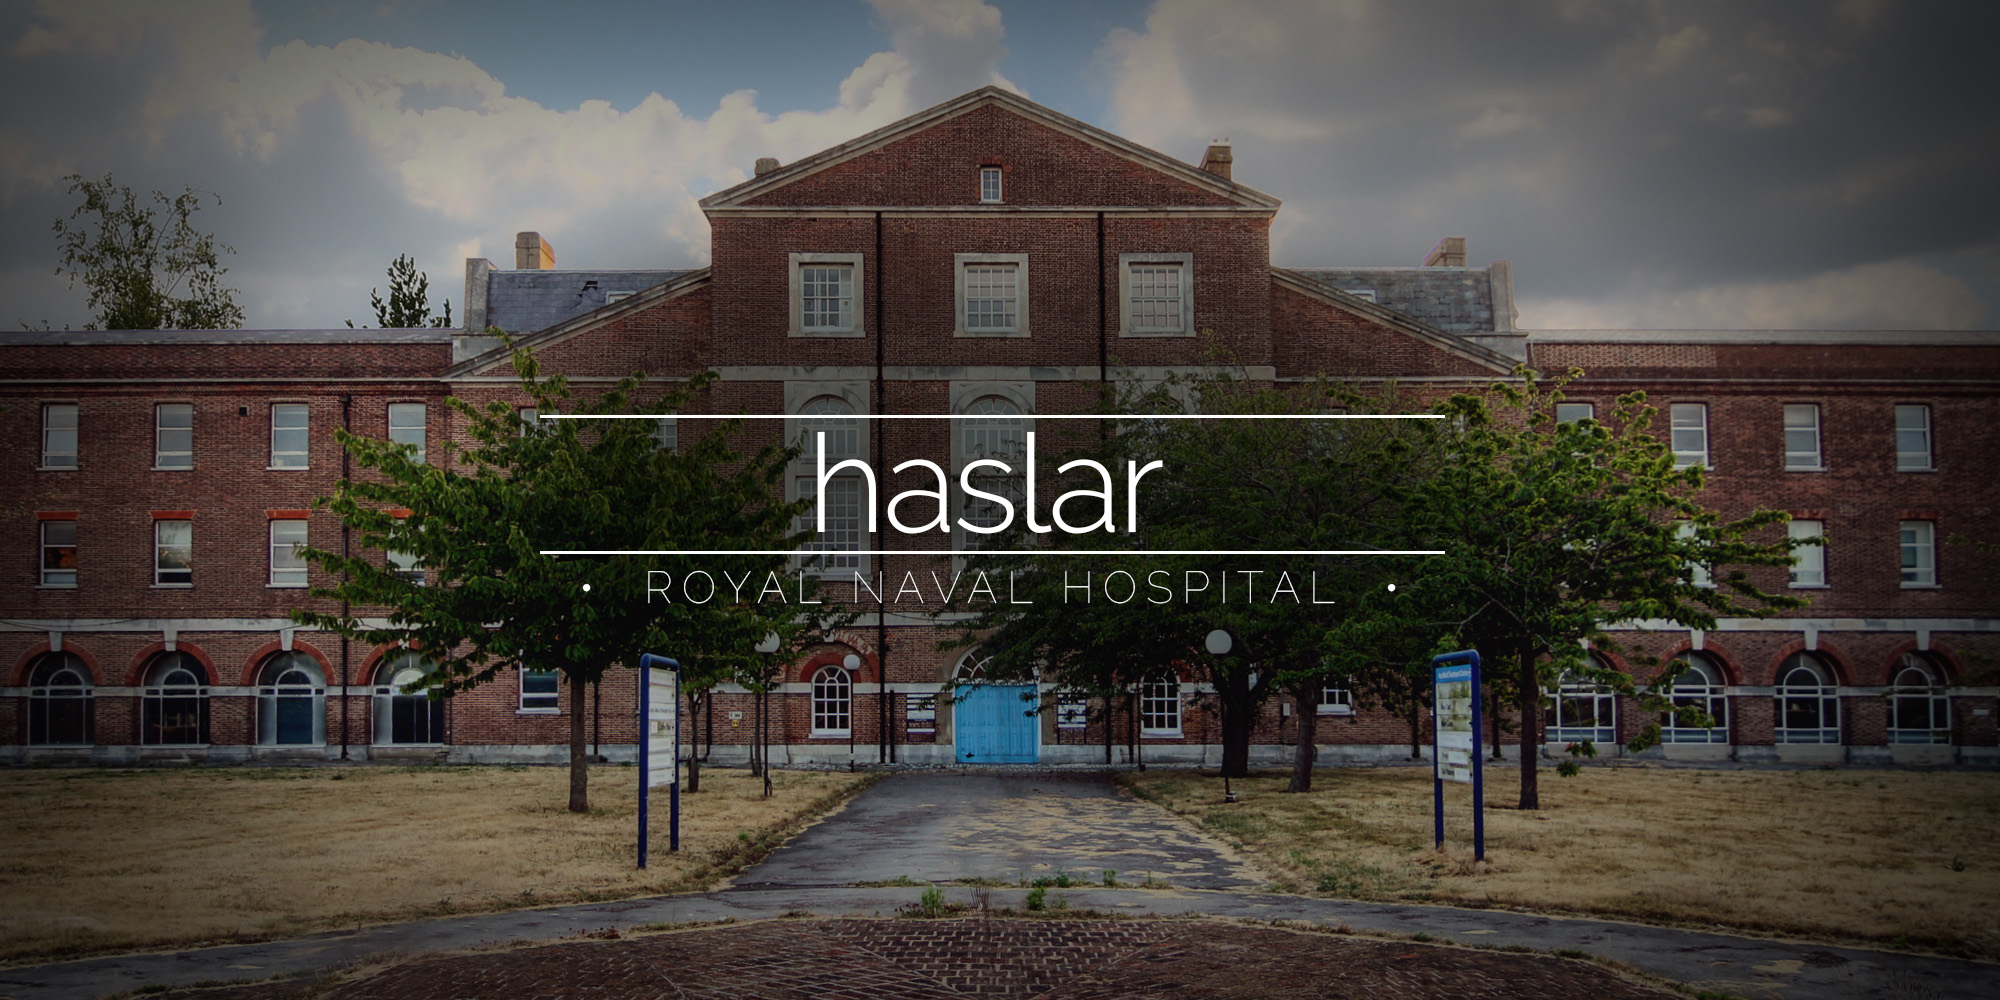 Royal Naval Hospital Haslar aka Serenity Hospital